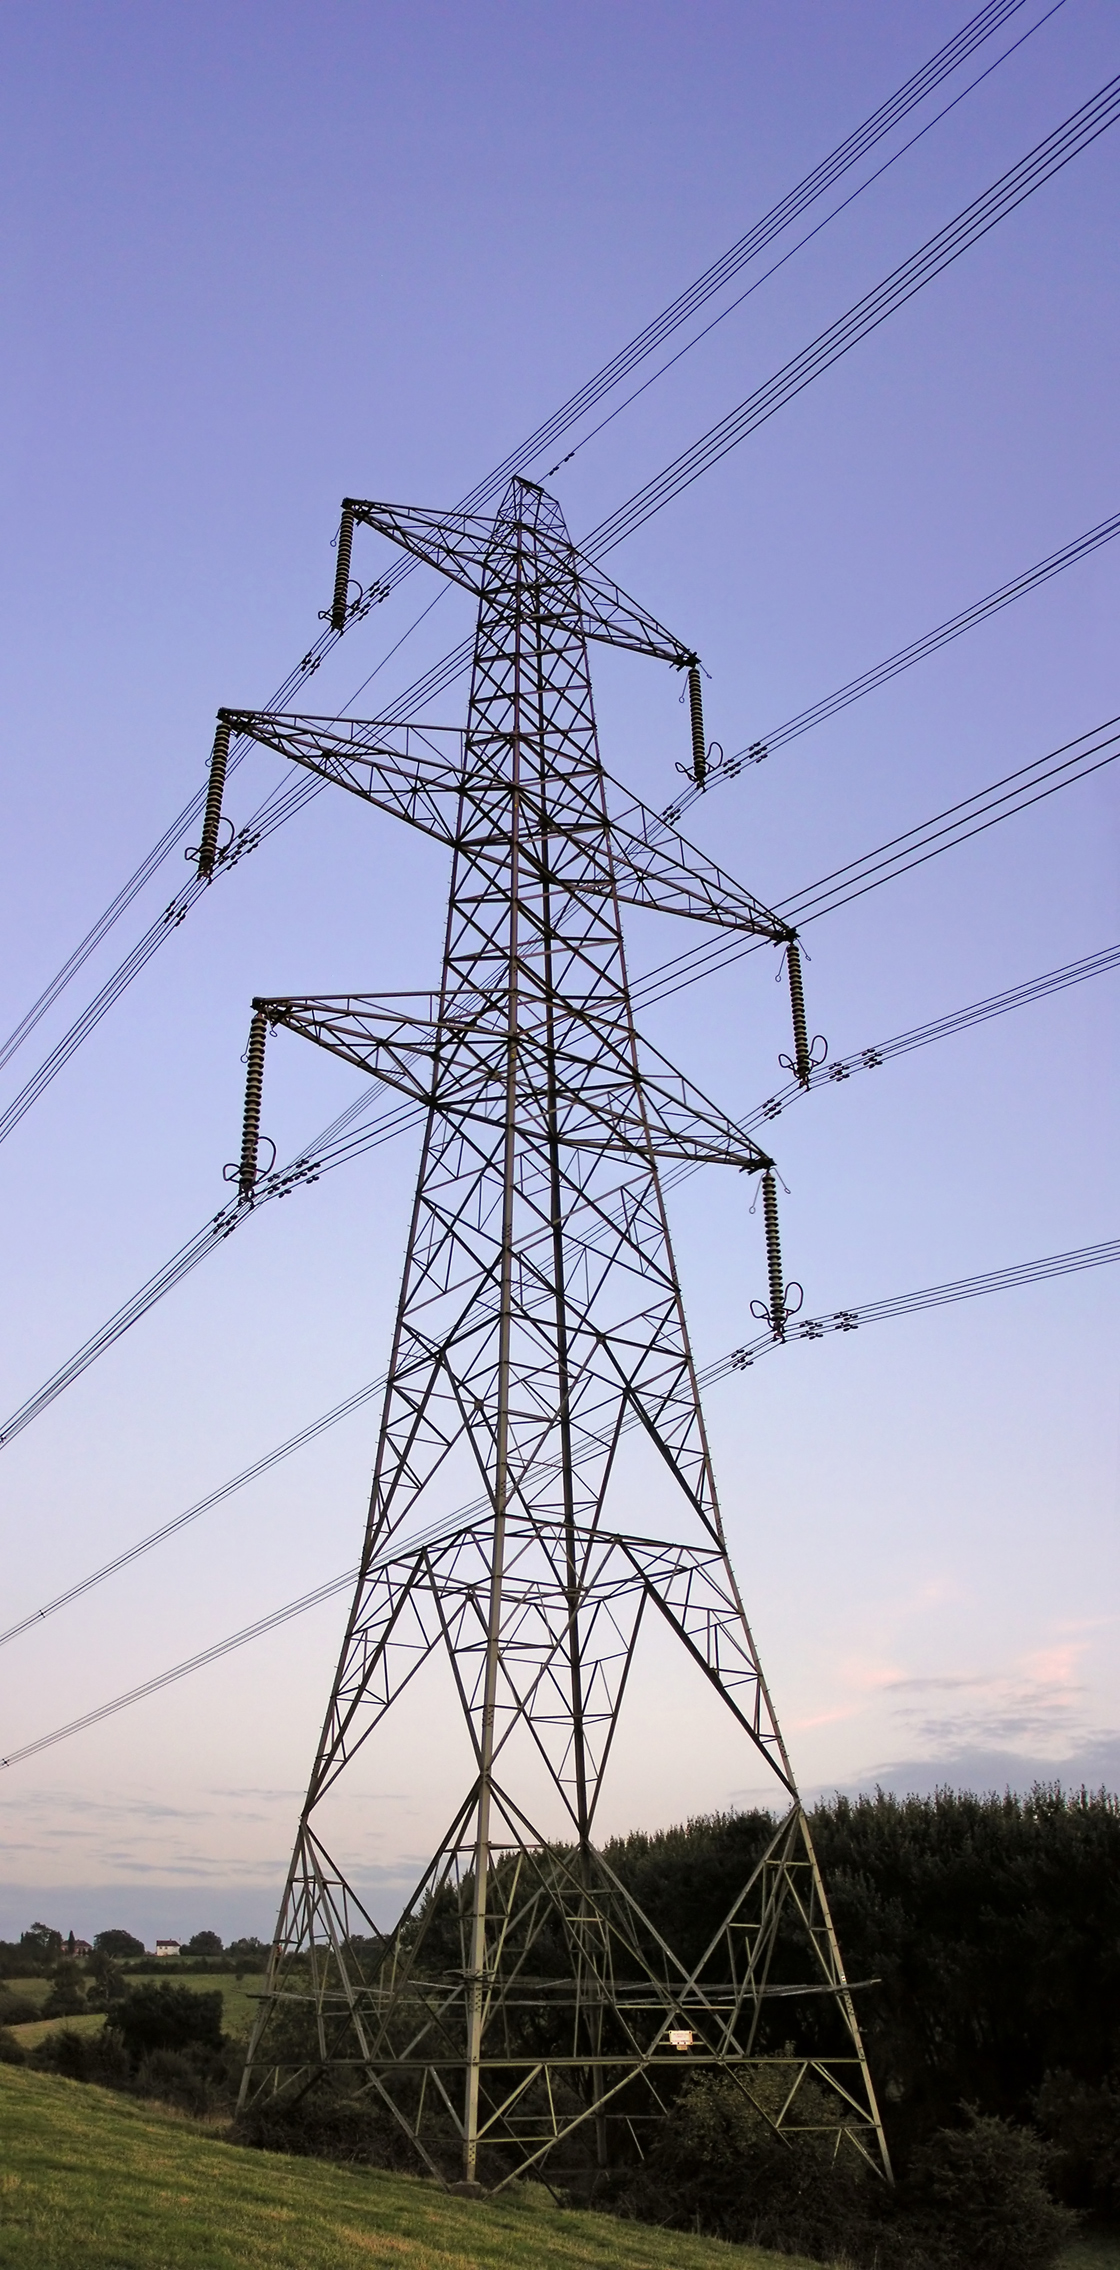 Transmission Tower Wikipedia Electric Circuit Design Group Picture Image By Tag